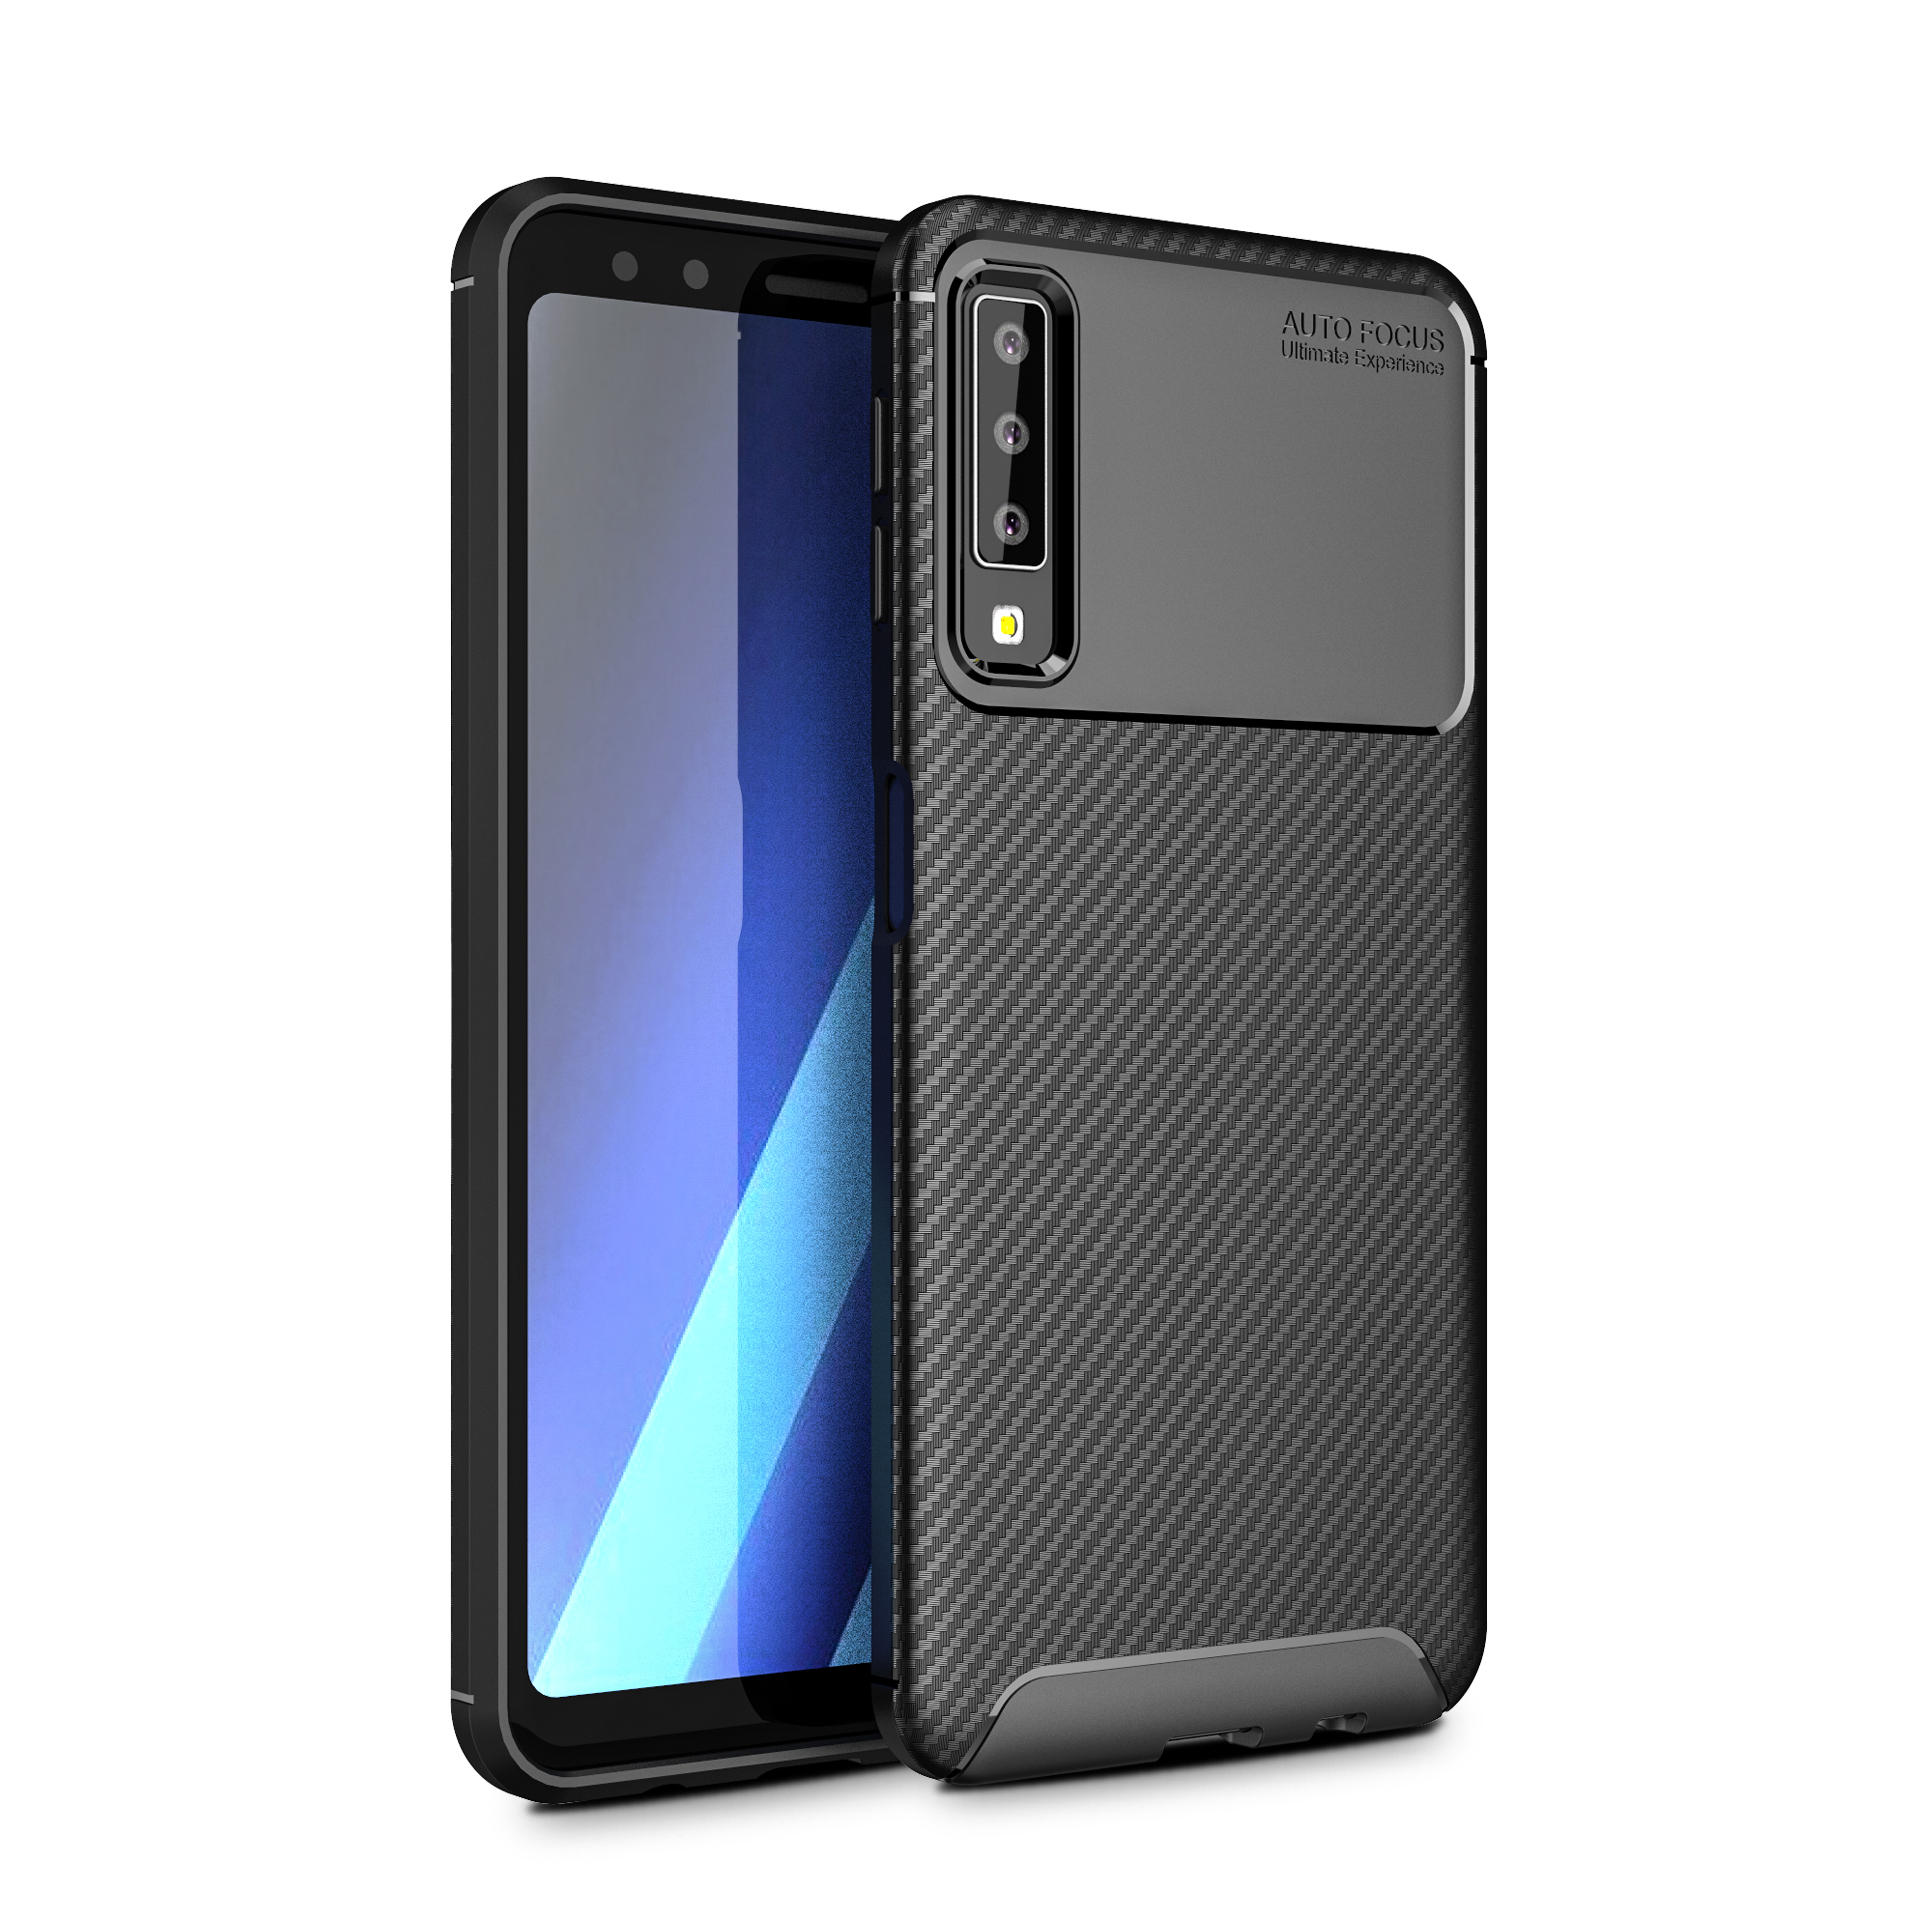 finest selection 23e4f a2084 Bakeey Protective Case For Samsung Galaxy A7 2018 Carbon Fiber Fingerprint  Resistant Soft TPU Back Cover